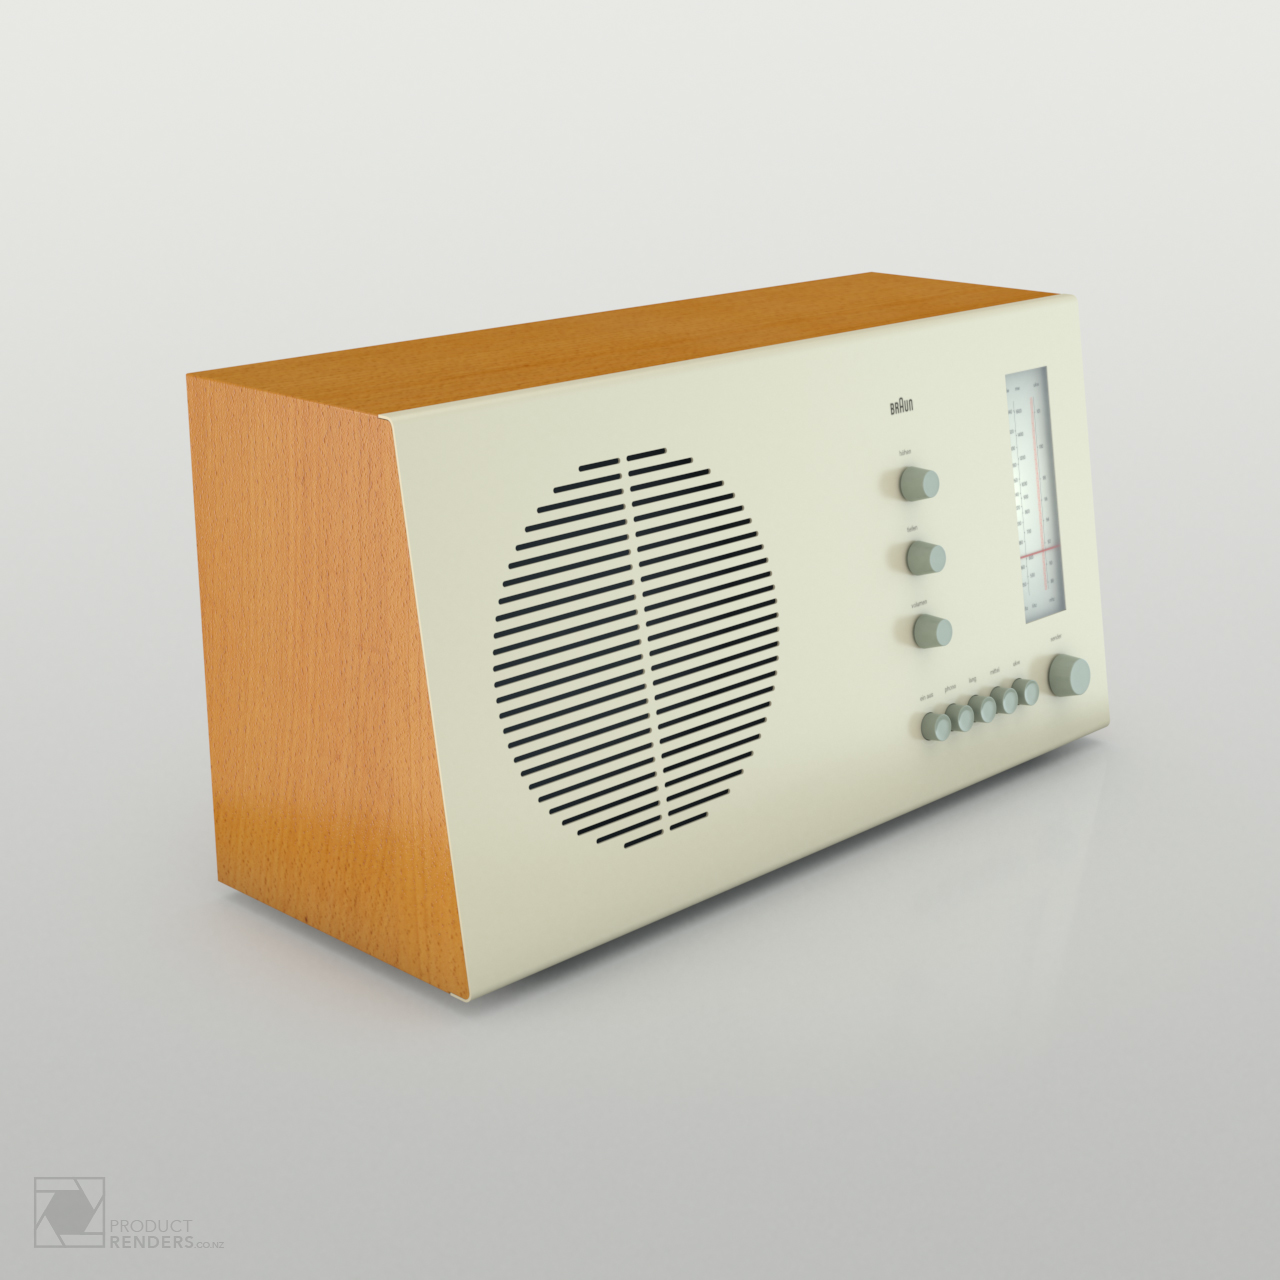 3D product render of a Braun RT20 radio designed by Dieter Rams in 1961 - Left hand side.